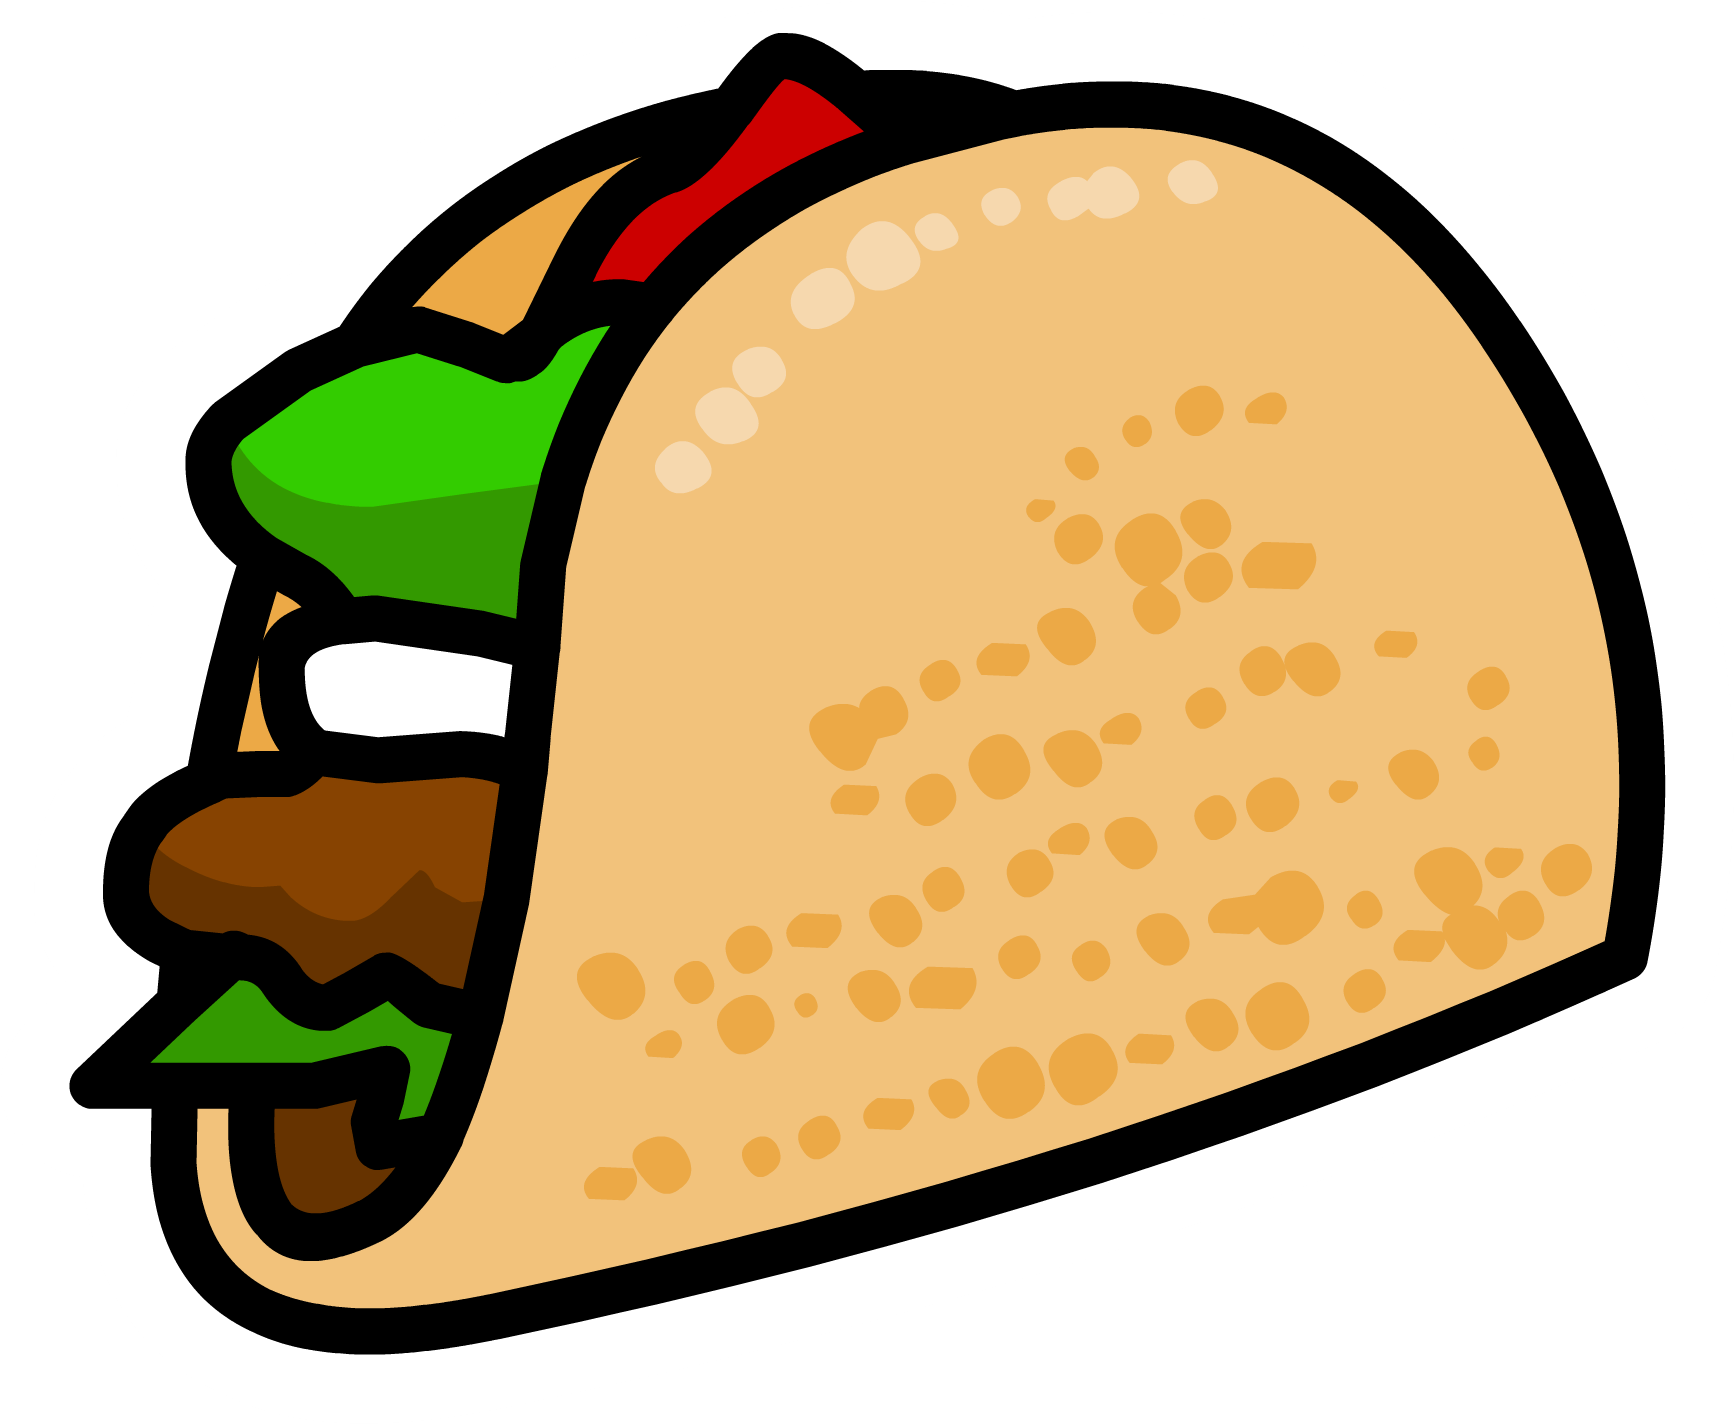 Taco png. Image the godfather video